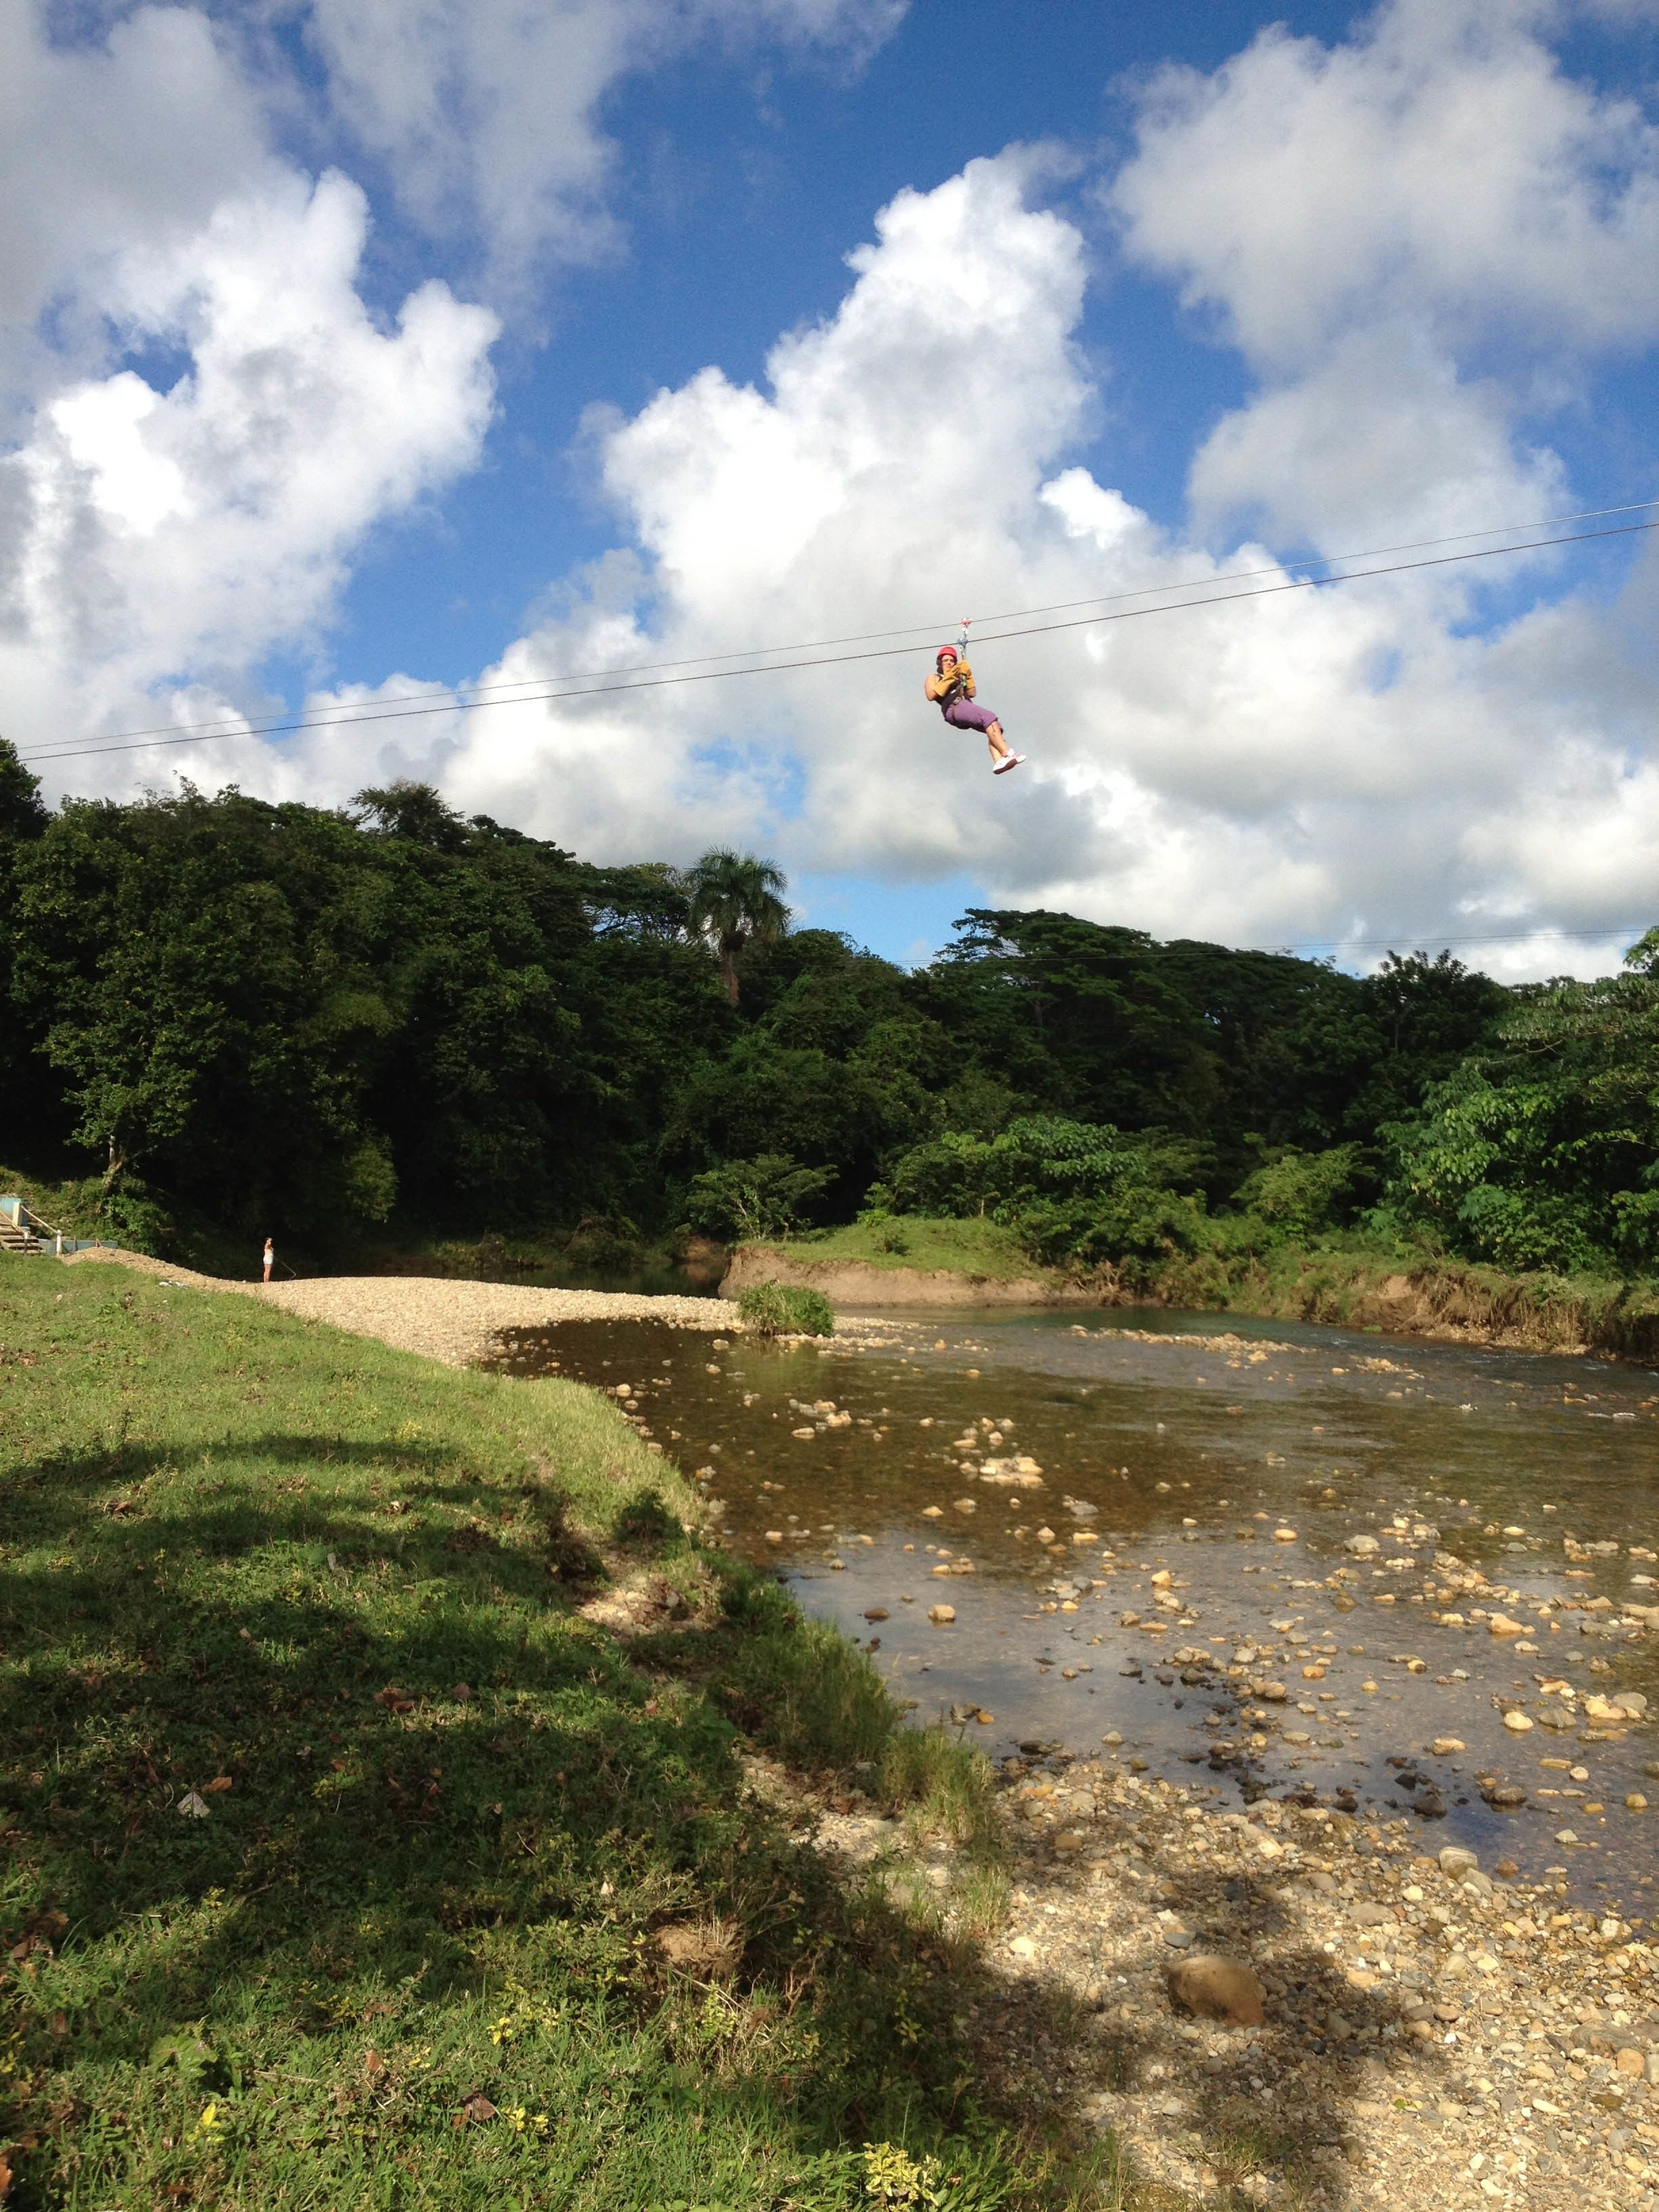 View of a zip lining activity in Punta Cana